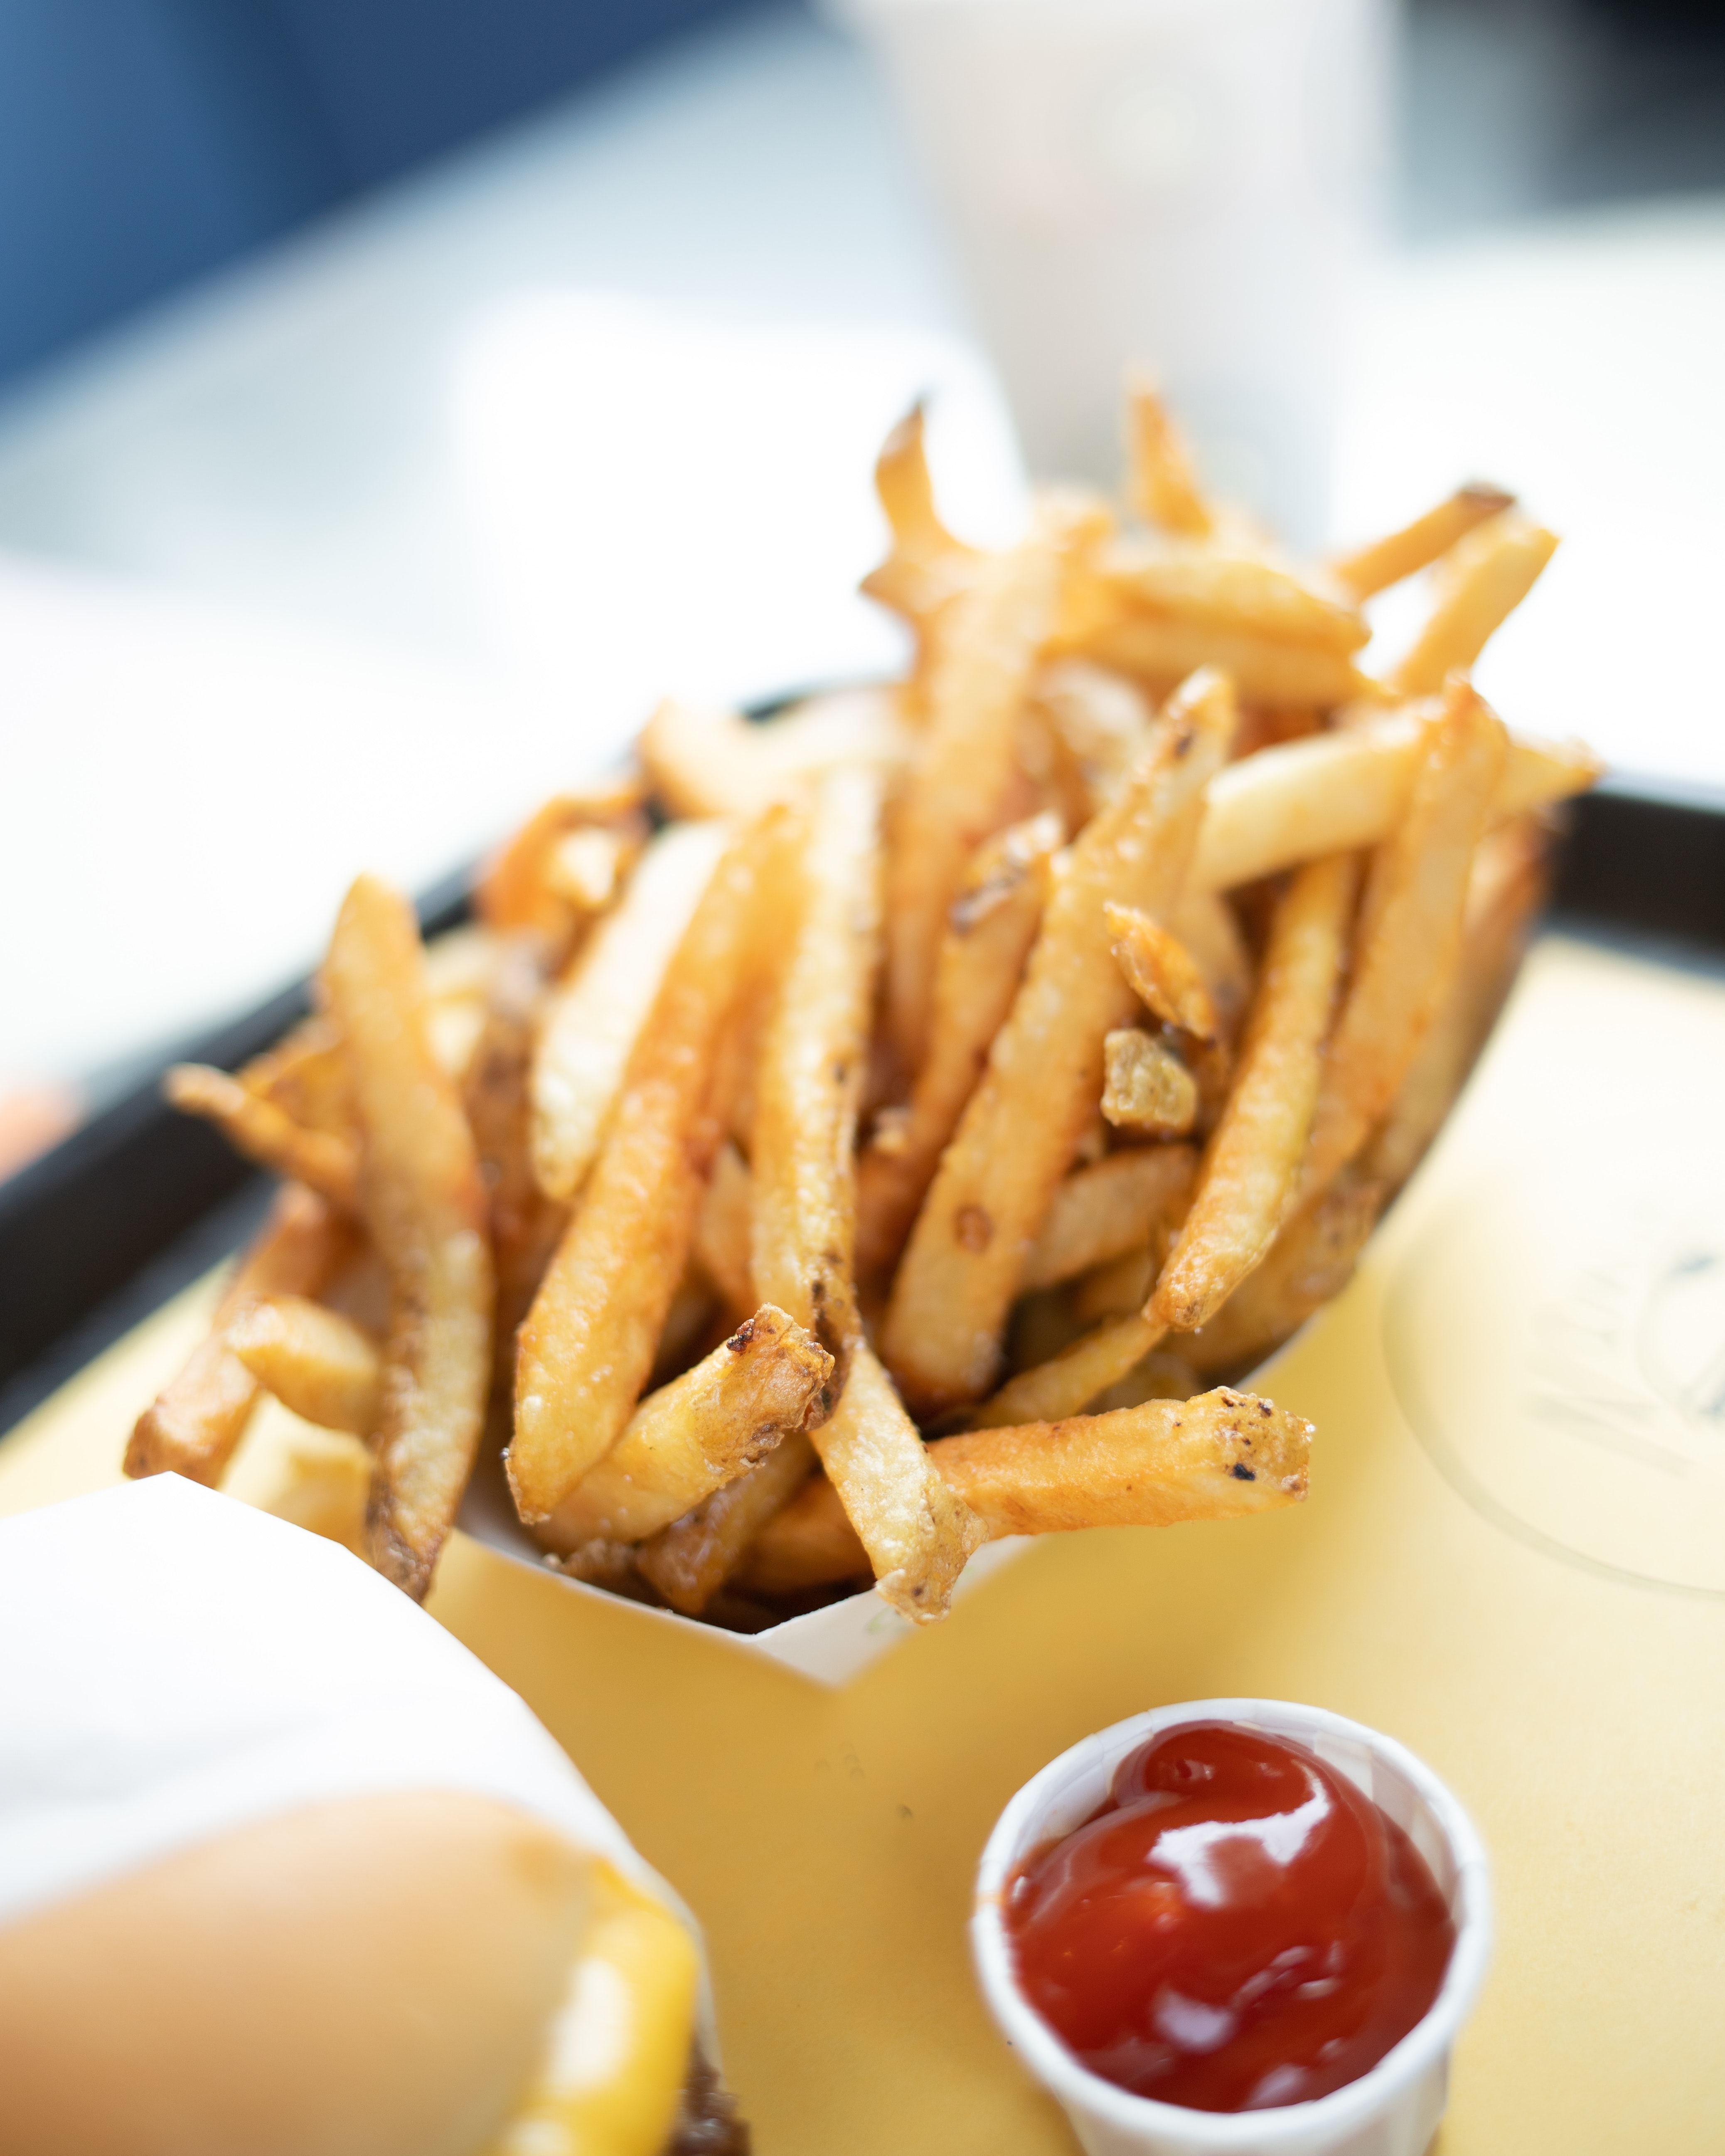 potato fries with tomato sauce dip